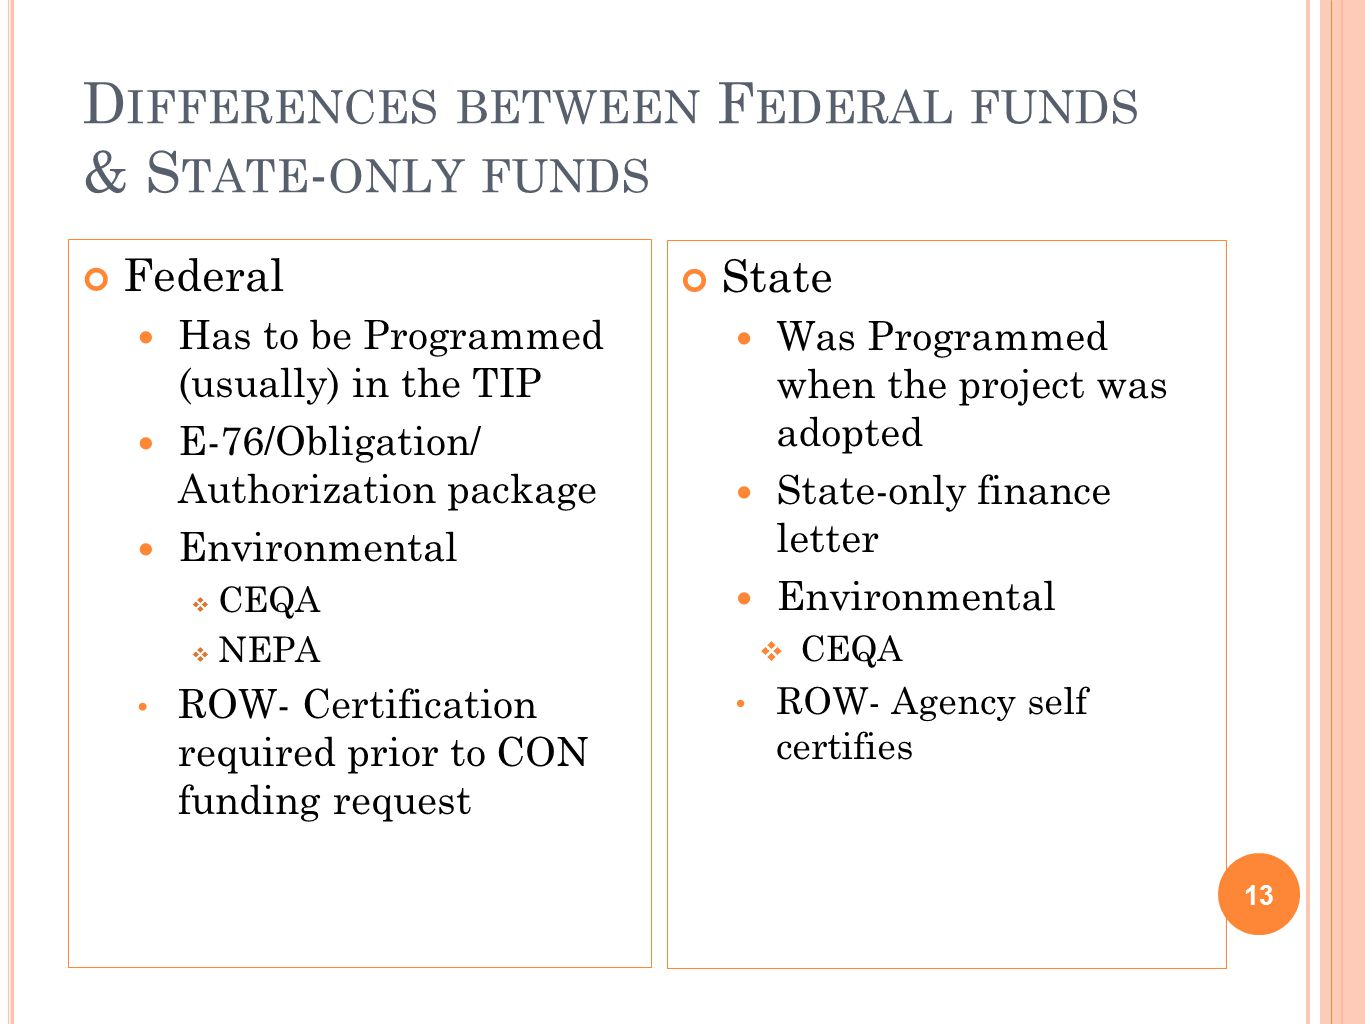 D IFFERENCES BETWEEN F EDERAL FUNDS & S TATE - ONLY FUNDS Federal Has to be Programmed (usually) in the TIP E-76/Obligation/ Authorization package Environmental  CEQA  NEPA ROW- Certification required prior to CON funding request 13 State Was Programmed when the project was adopted State-only finance letter Environmental  CEQA ROW- Agency self certifies